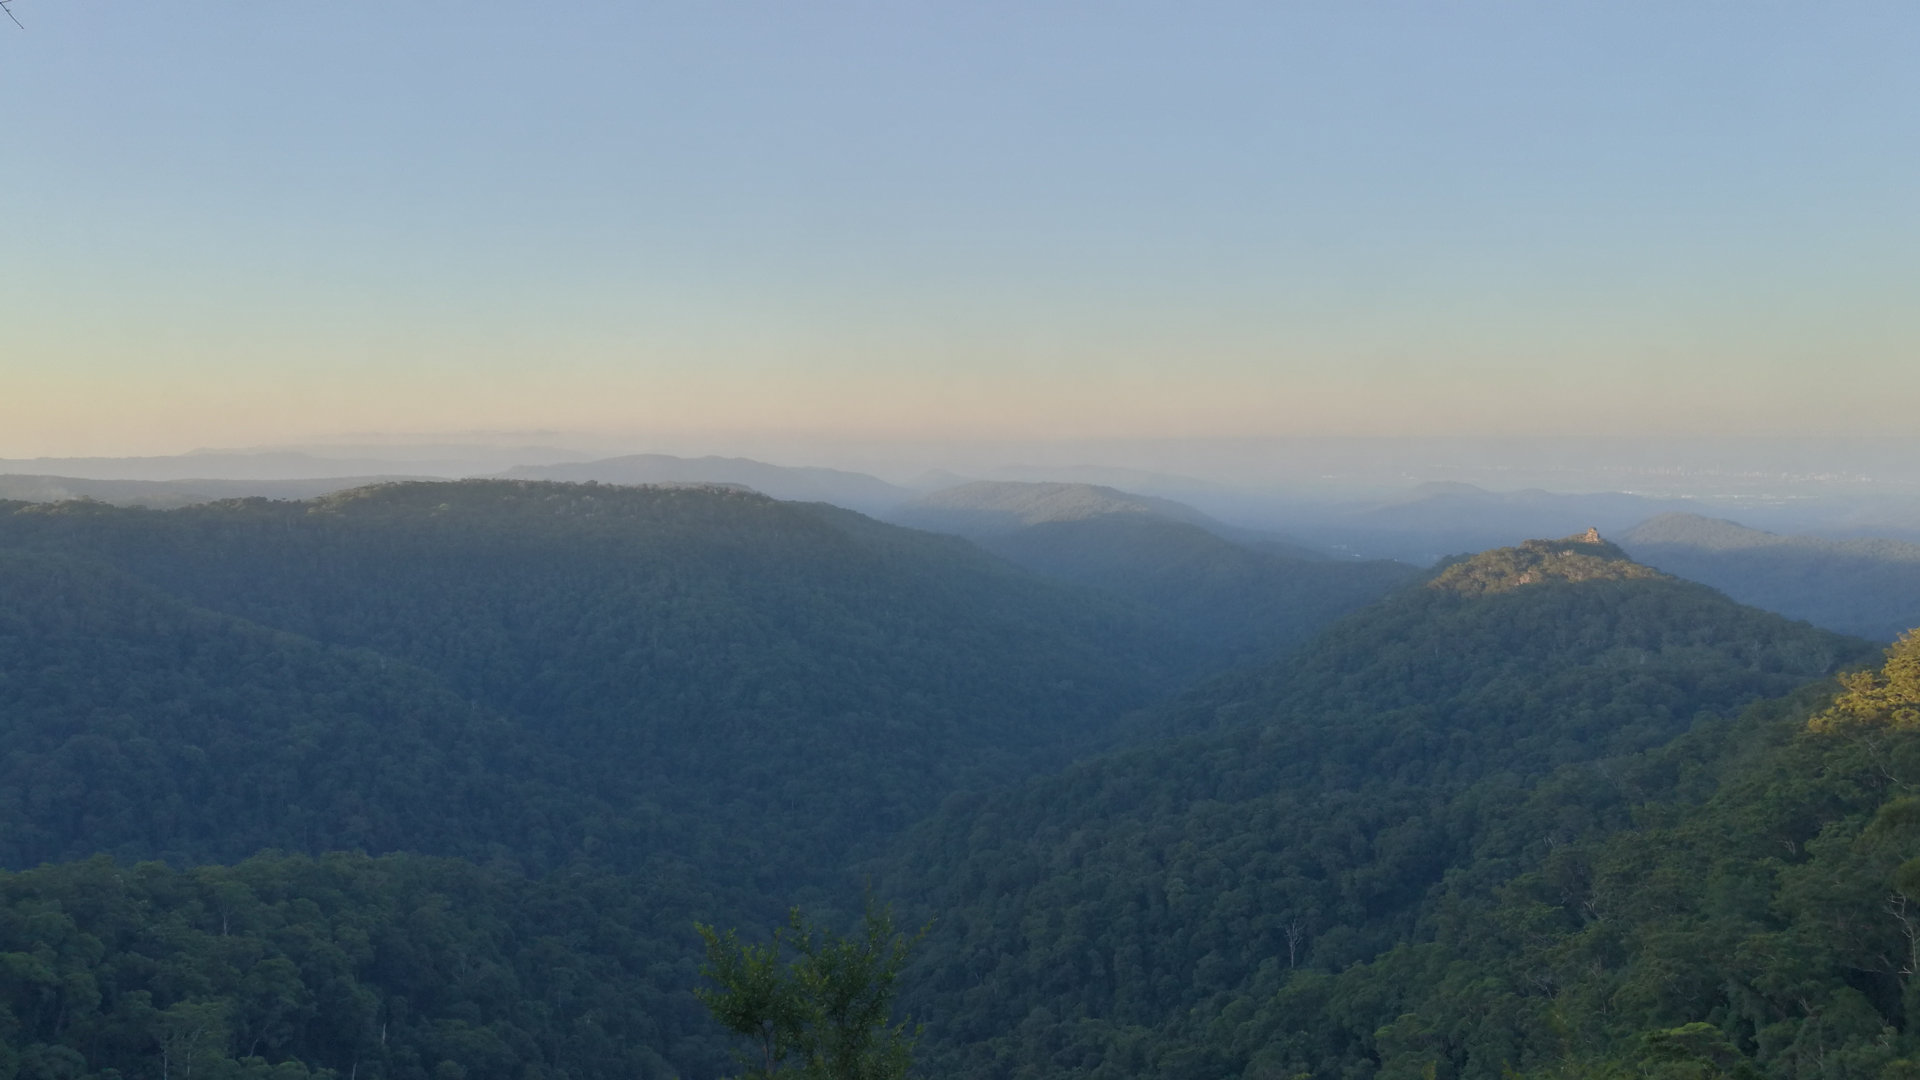 View from lookout at Goomoolahra Picnic Area at Springbrook with the Pinnacle and hazy horizon of the Gold Coast. Goomoolahra Picnic Area is beside the Mundora Creek flowing over the Goomoolahra Falls. On clear days the lookouts view through to Stradbroke Island and Moreton Island